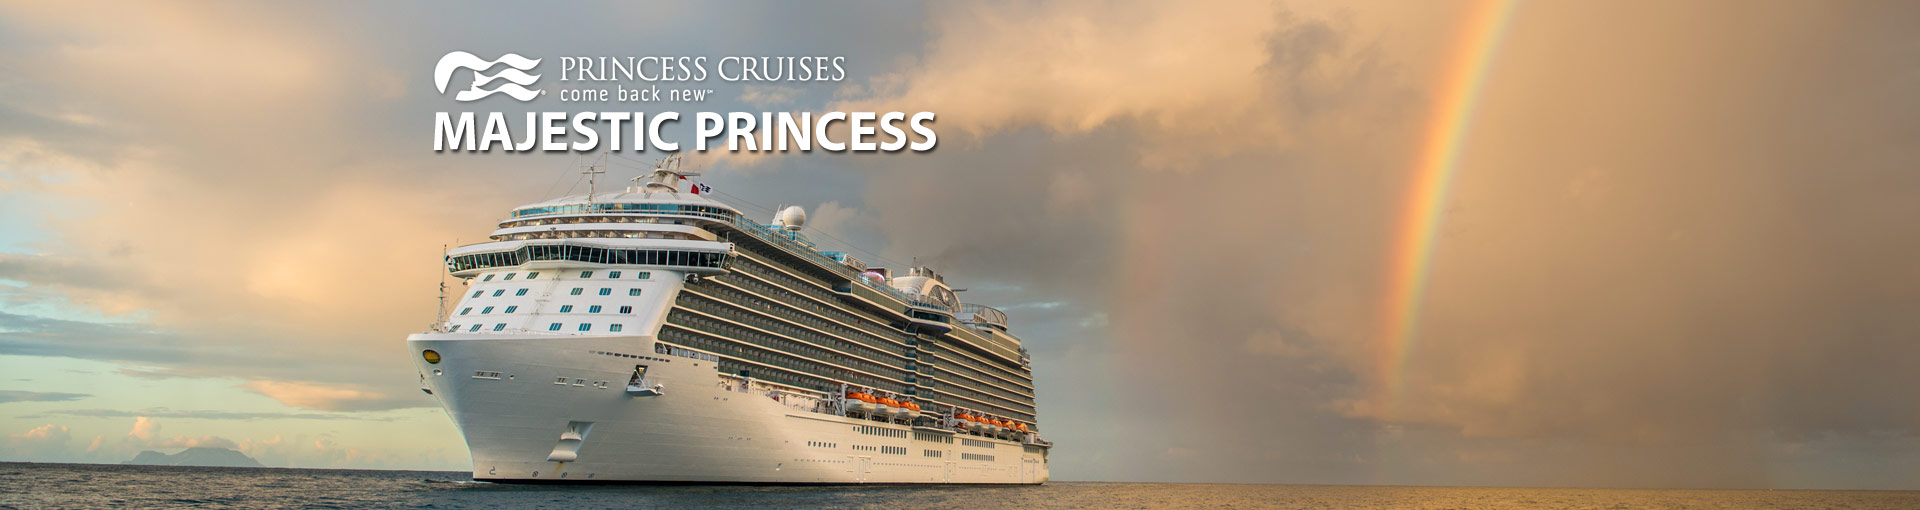 Cruise Holidays_Princess Cruise_Majestic Princess